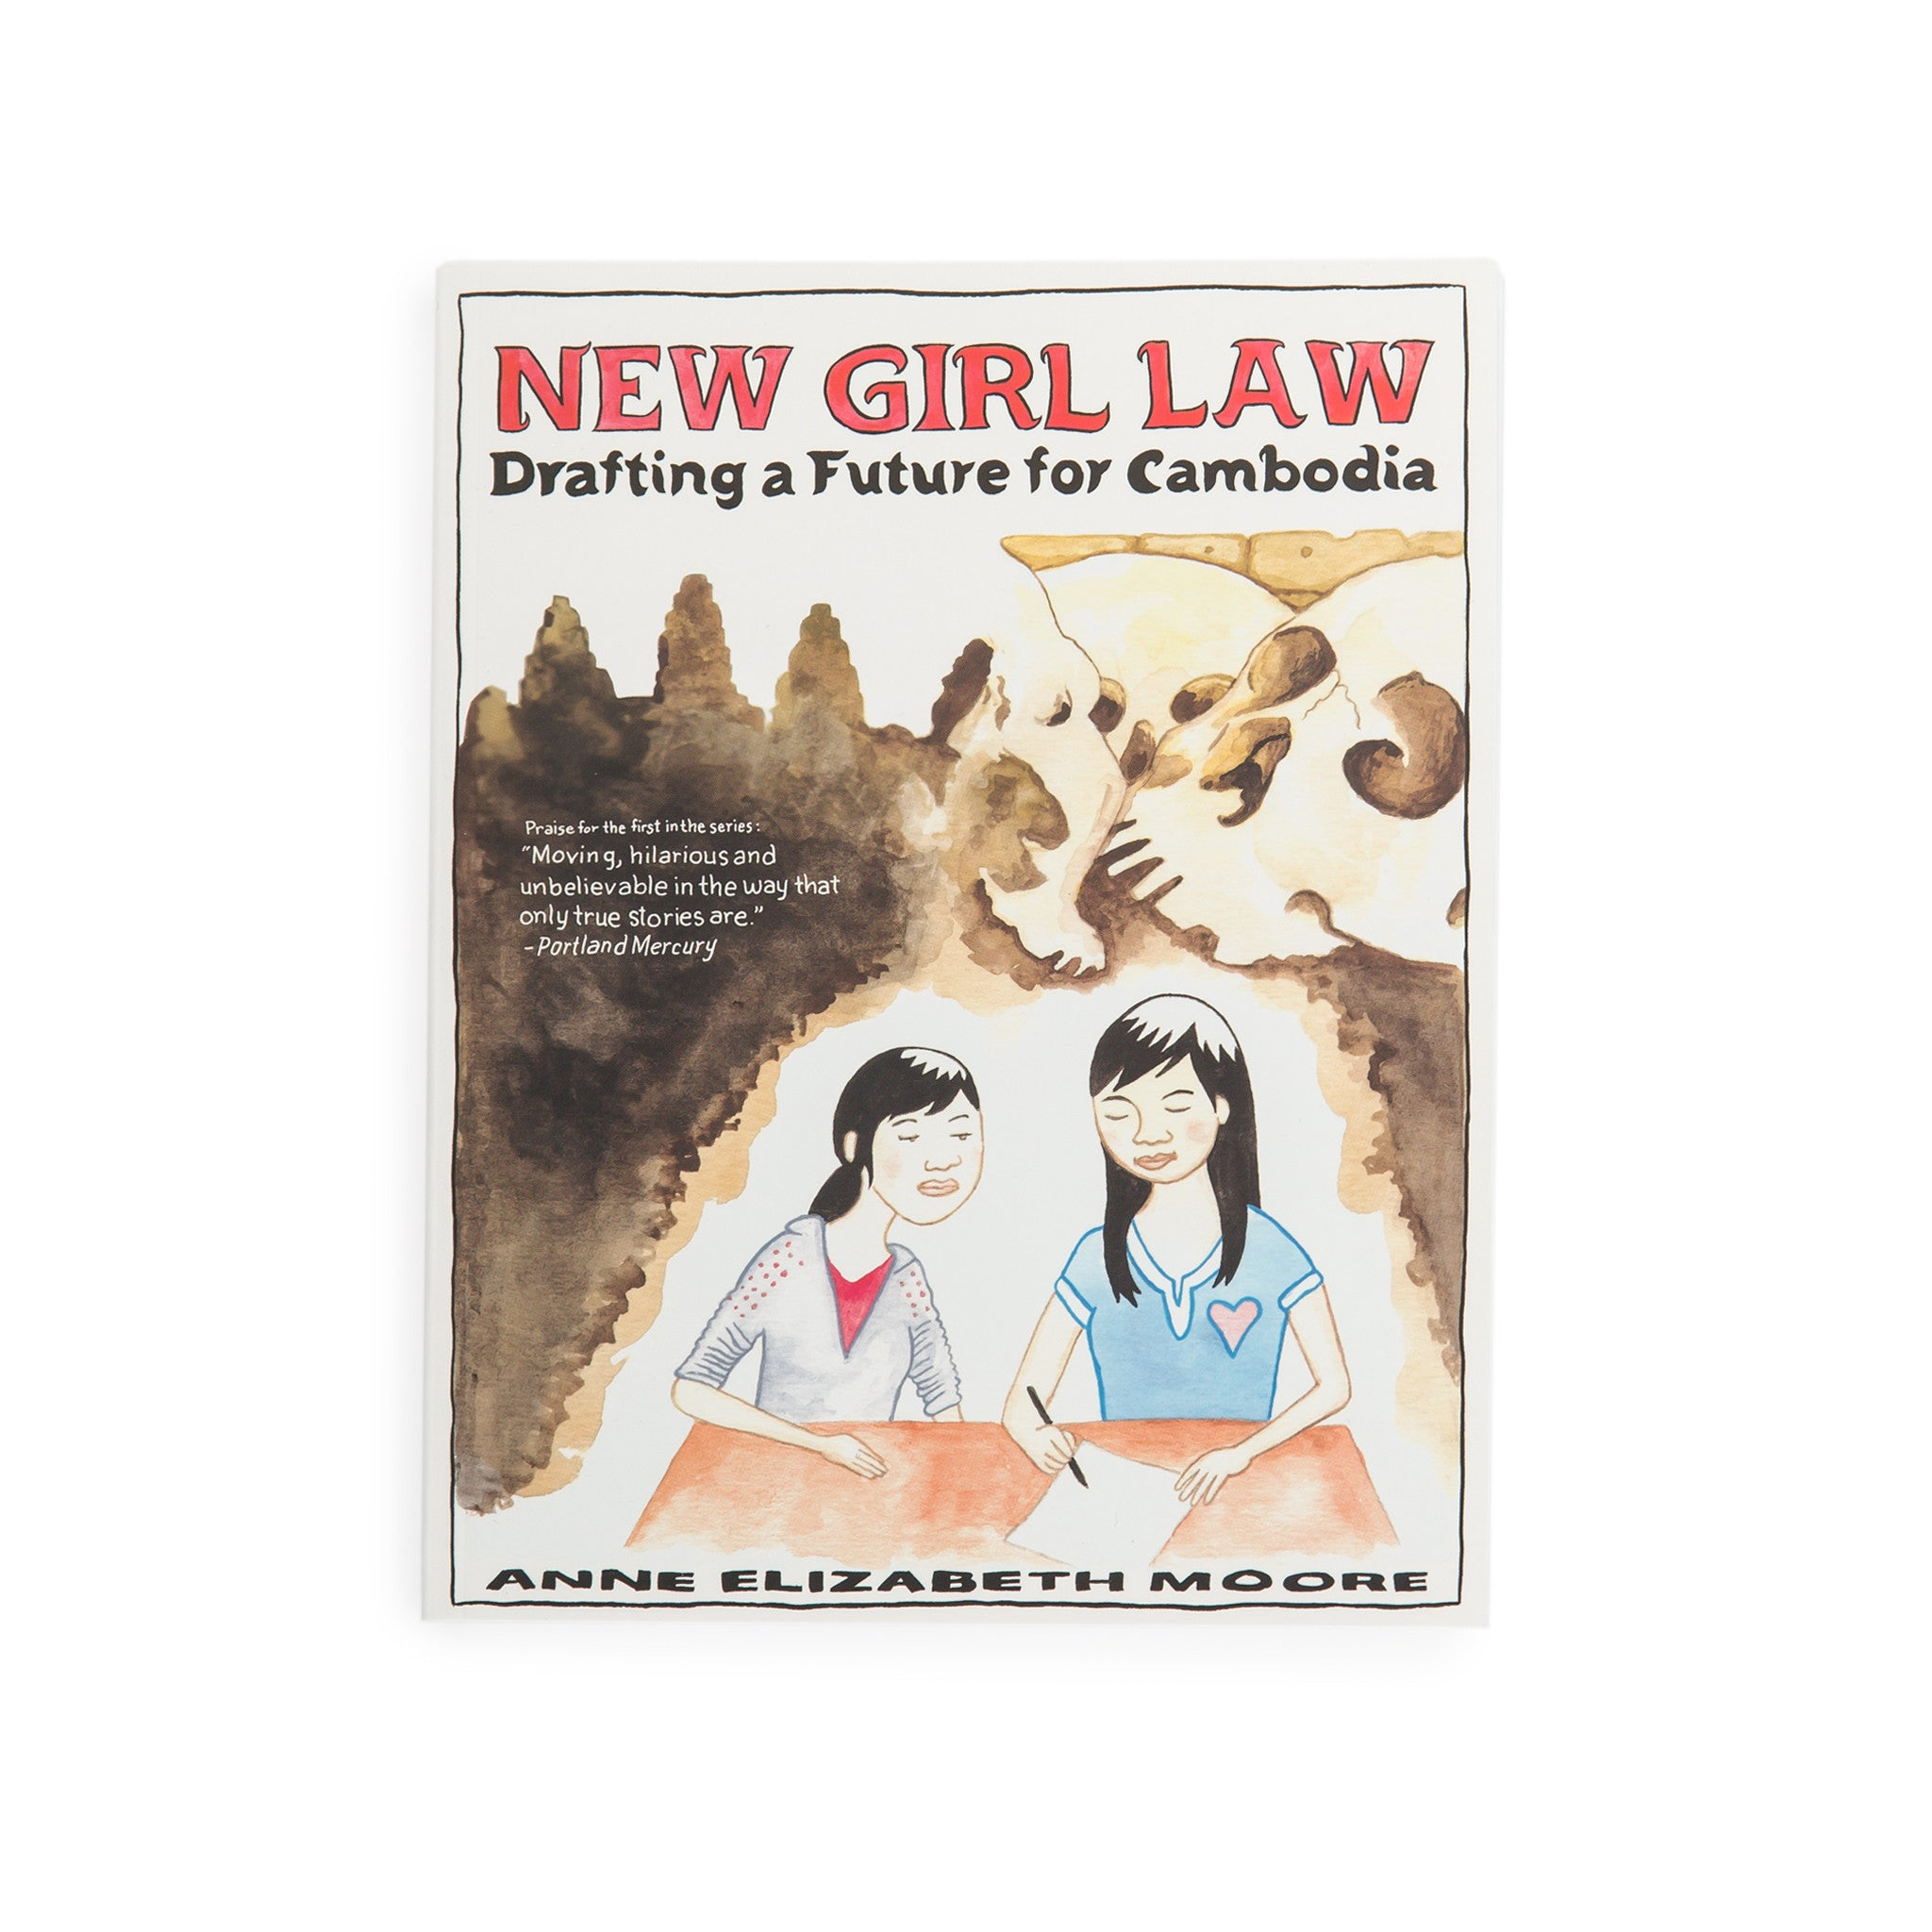 New Girl Law: Drafting a Future for Cambodia by Anne Elizabeth Moore